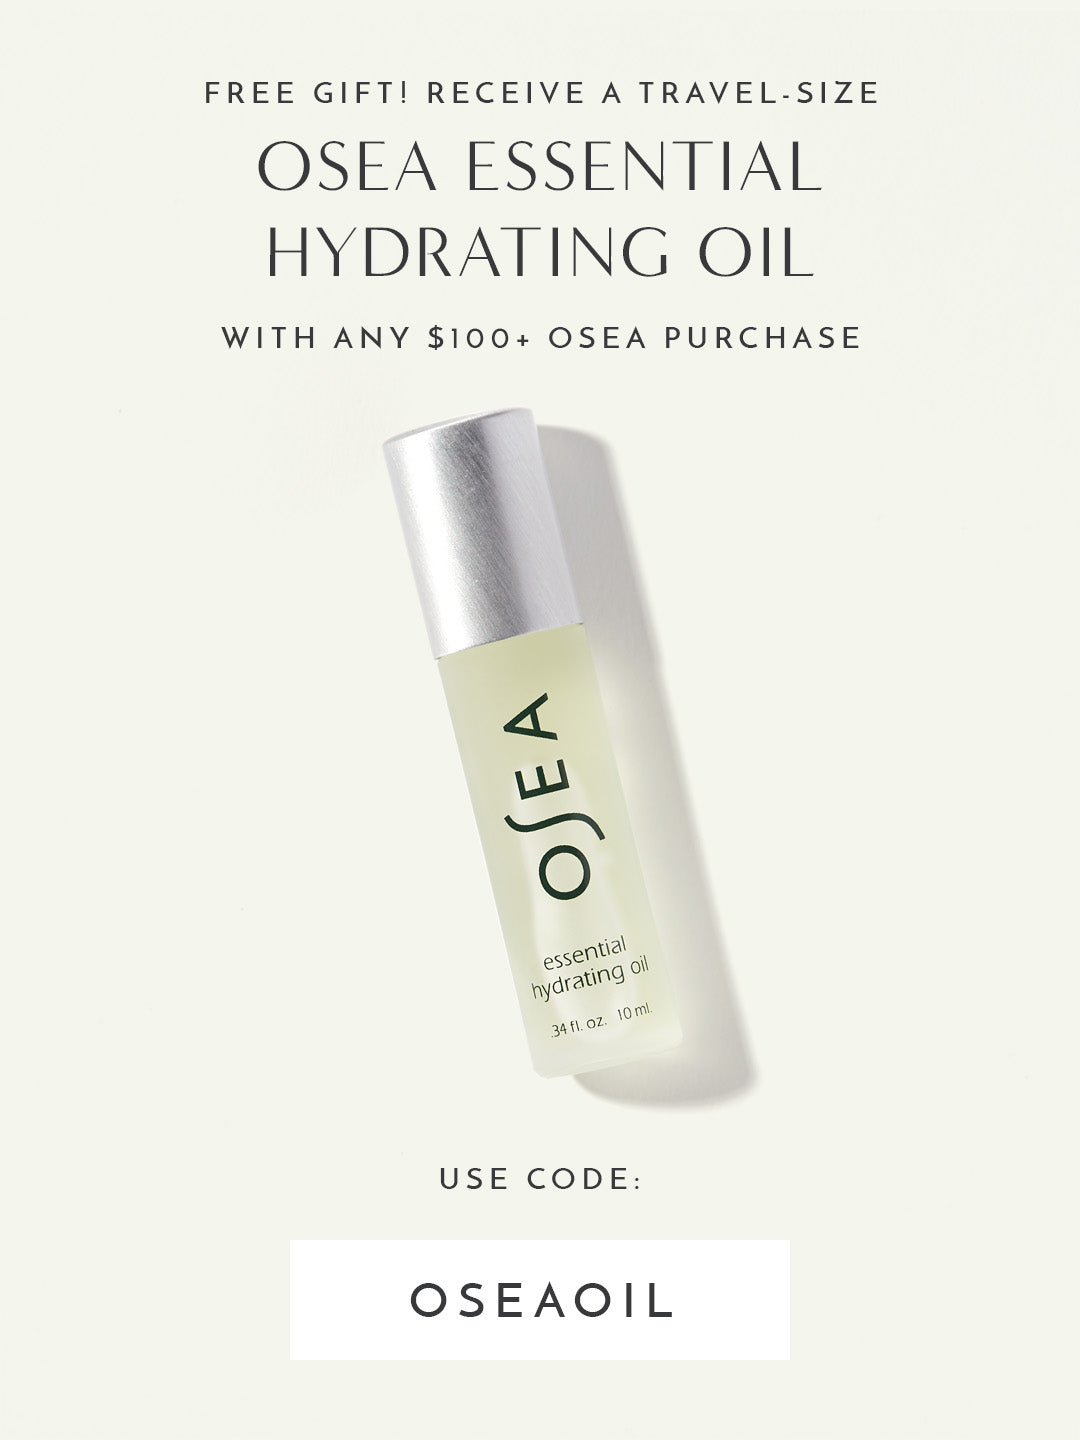 FREE Travel-Size OSEA Essential Hydrating Oil with any $100+ OSEA purchase. Use code: OSEAOIL